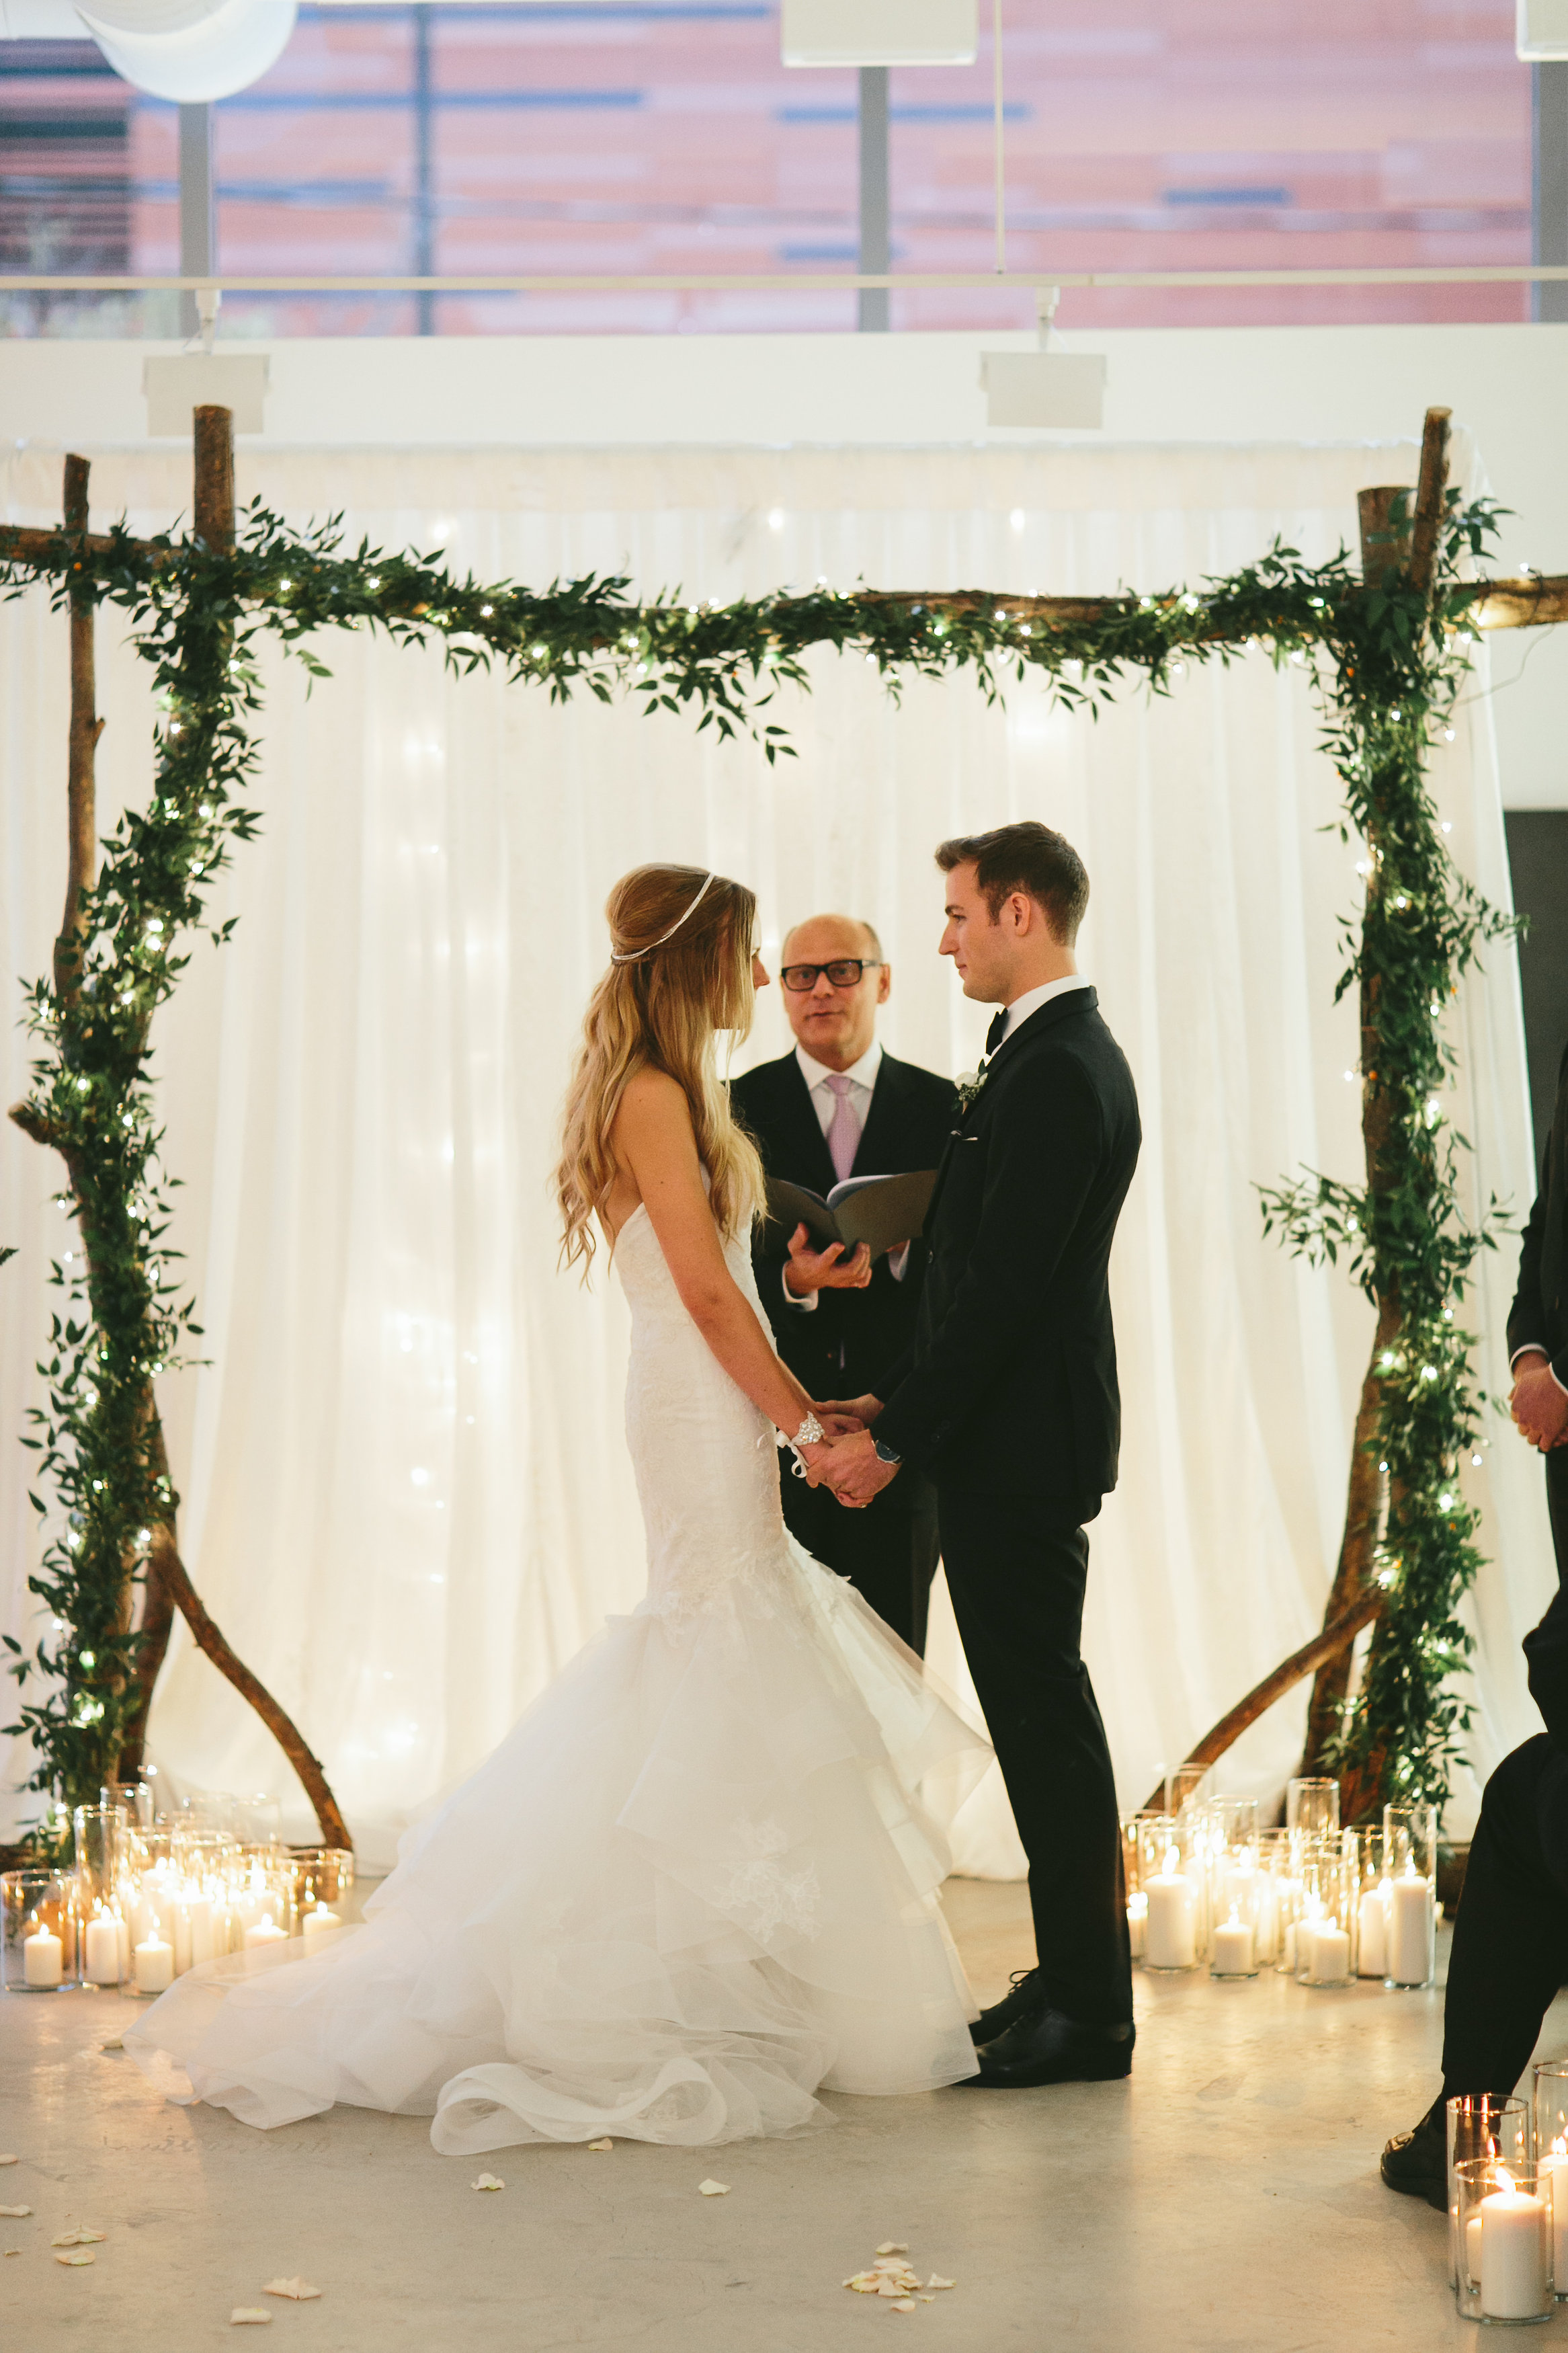 Elegant and Rustic Toronto Wedding in the Distillery District - Ceremony in Julie M. Gallery